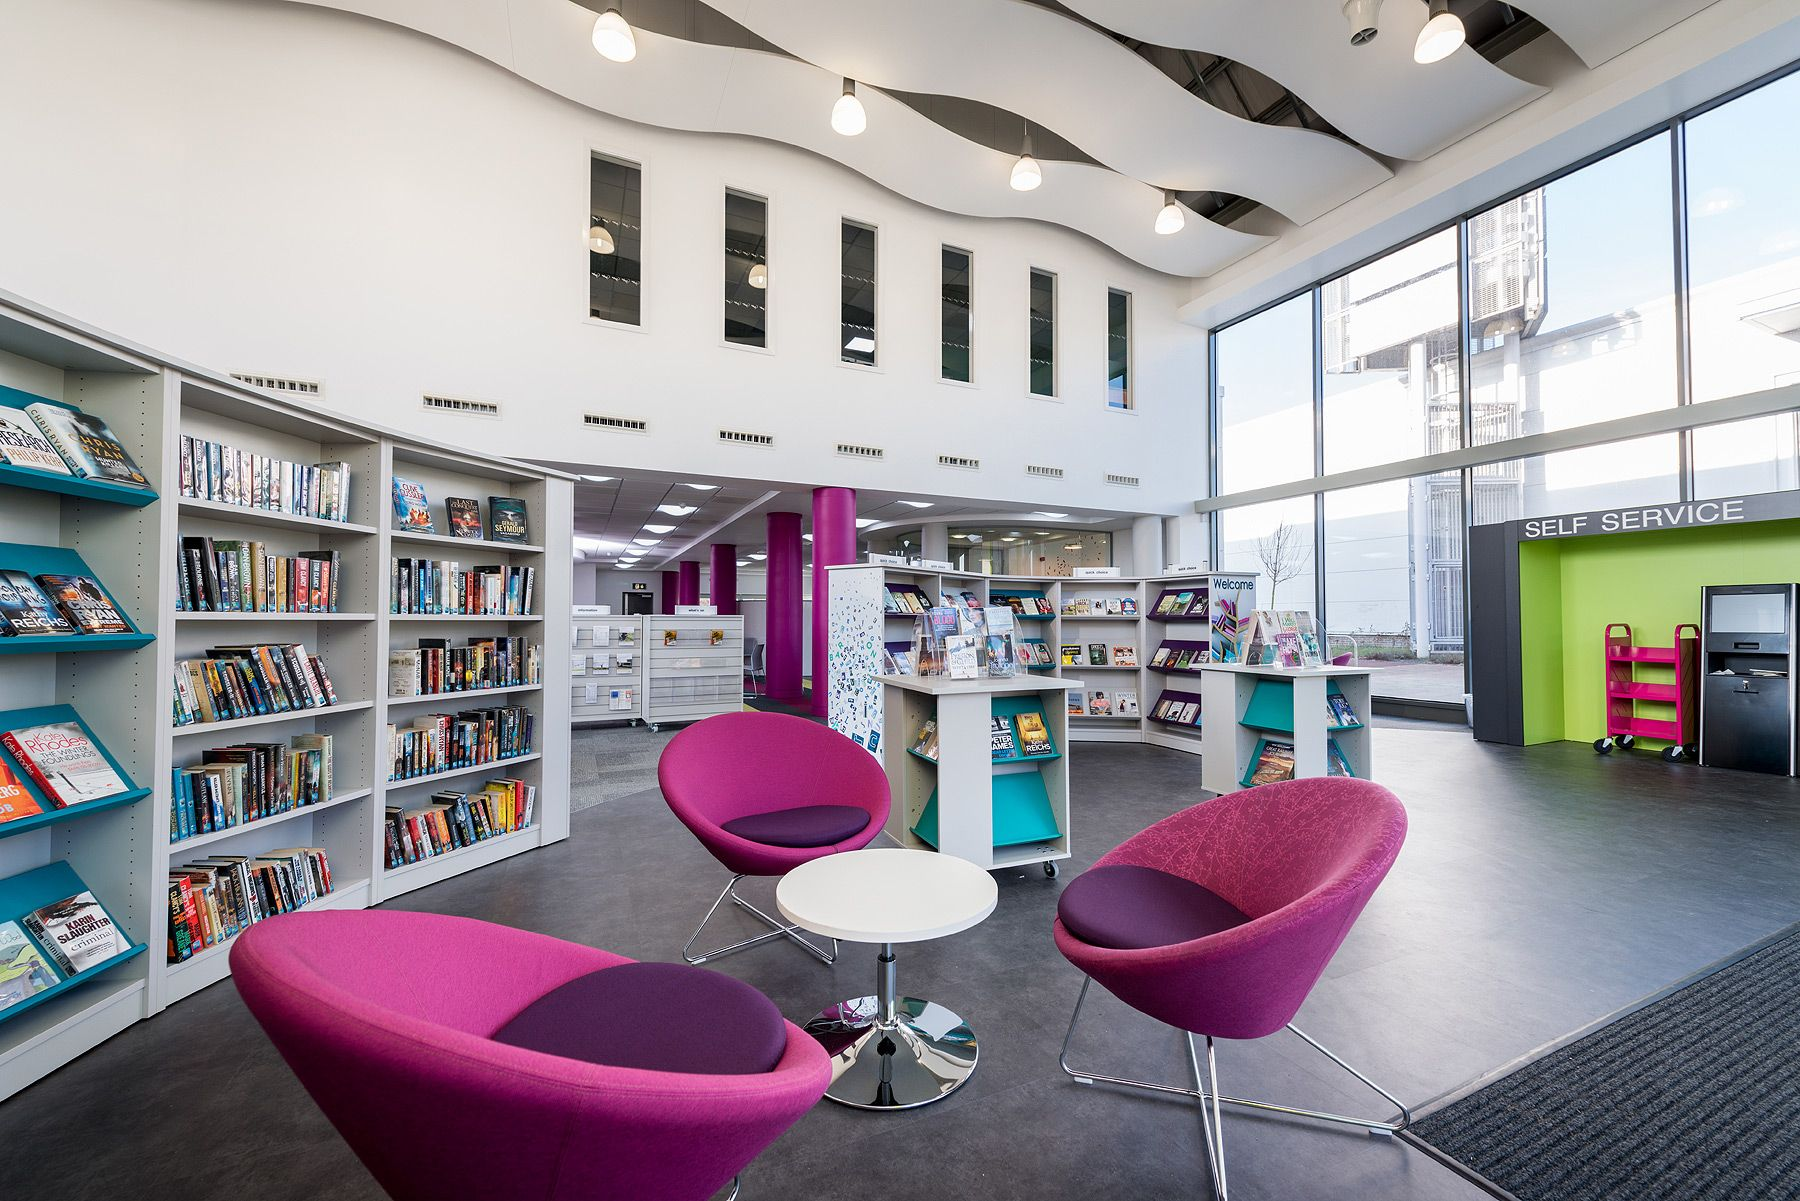 Kingston Library Milton Keynes Uk With Images Library Design